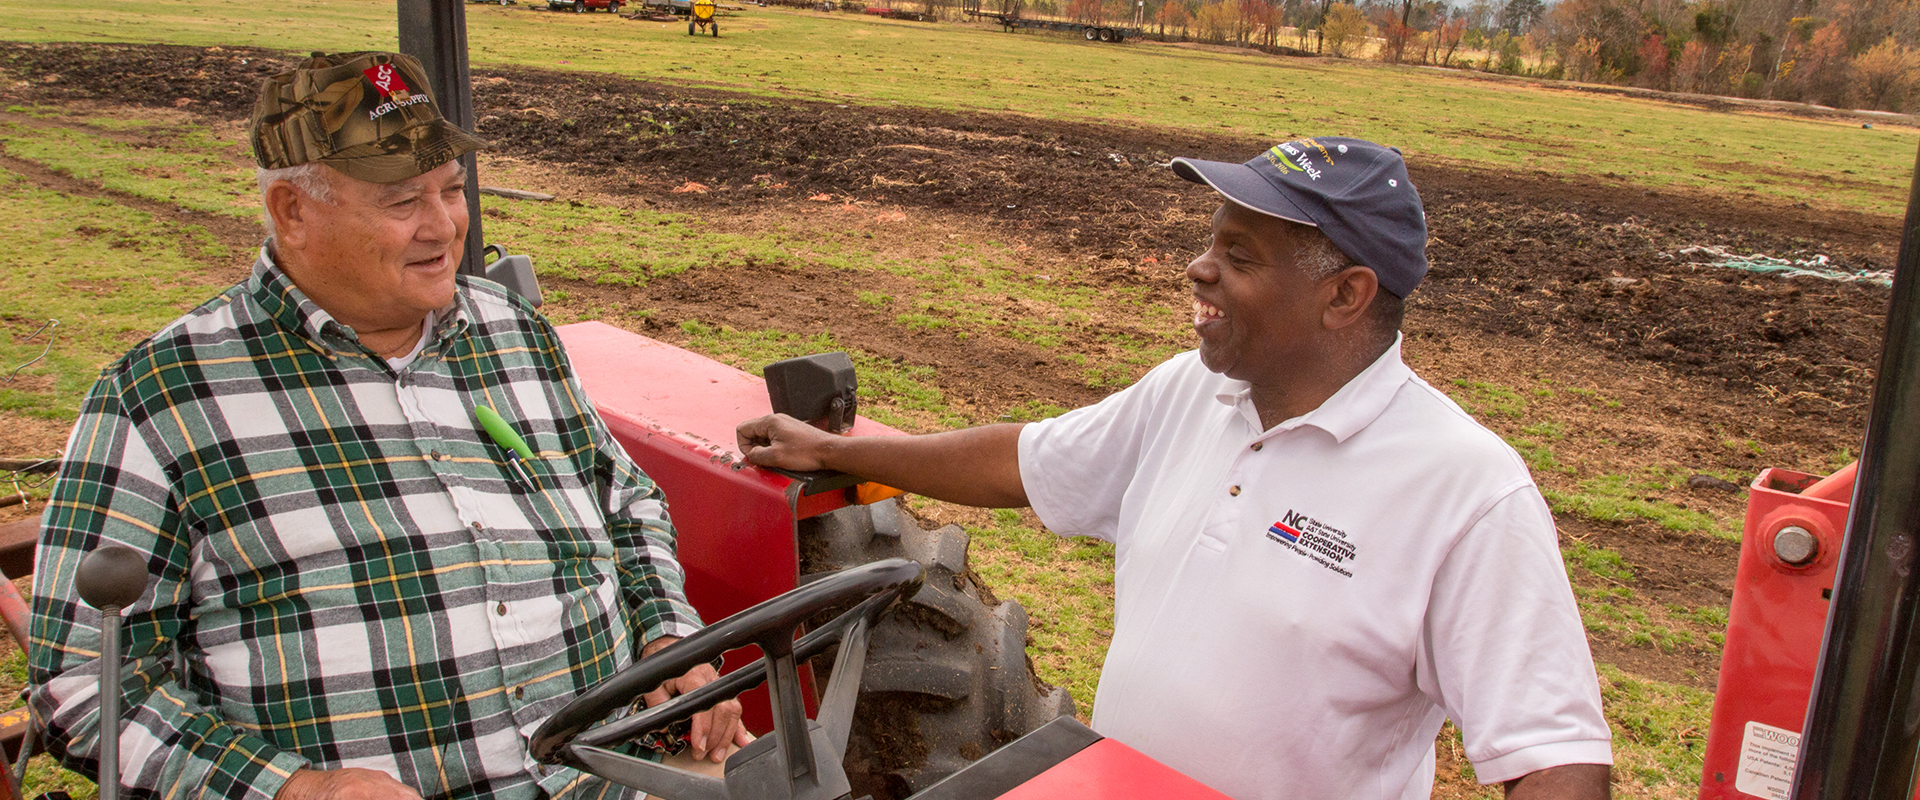 Extension agent talking to small farmer on a tractor